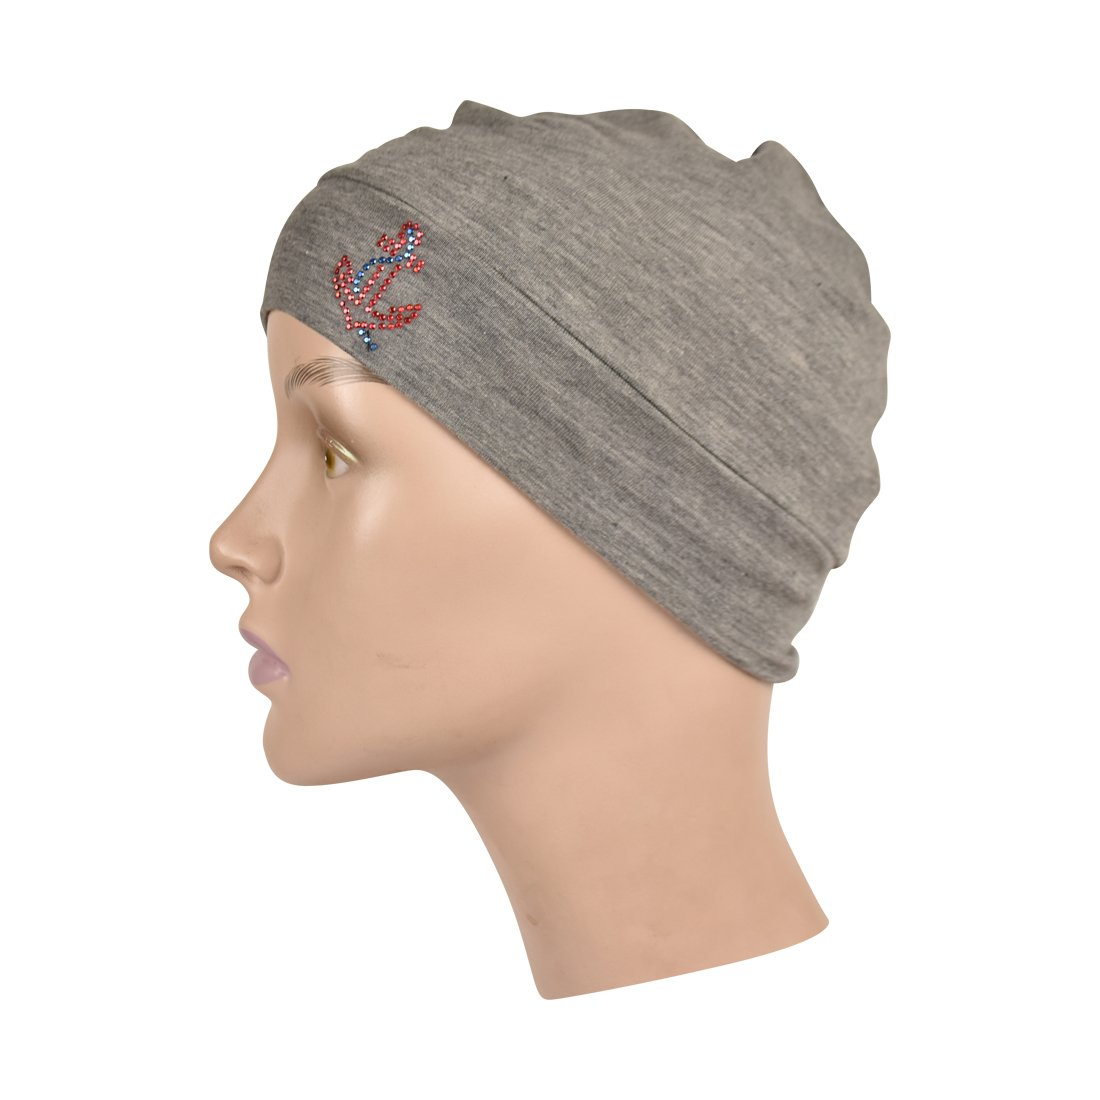 Chemo Beanie Sleep Cap with Red Stud Anchor Applique